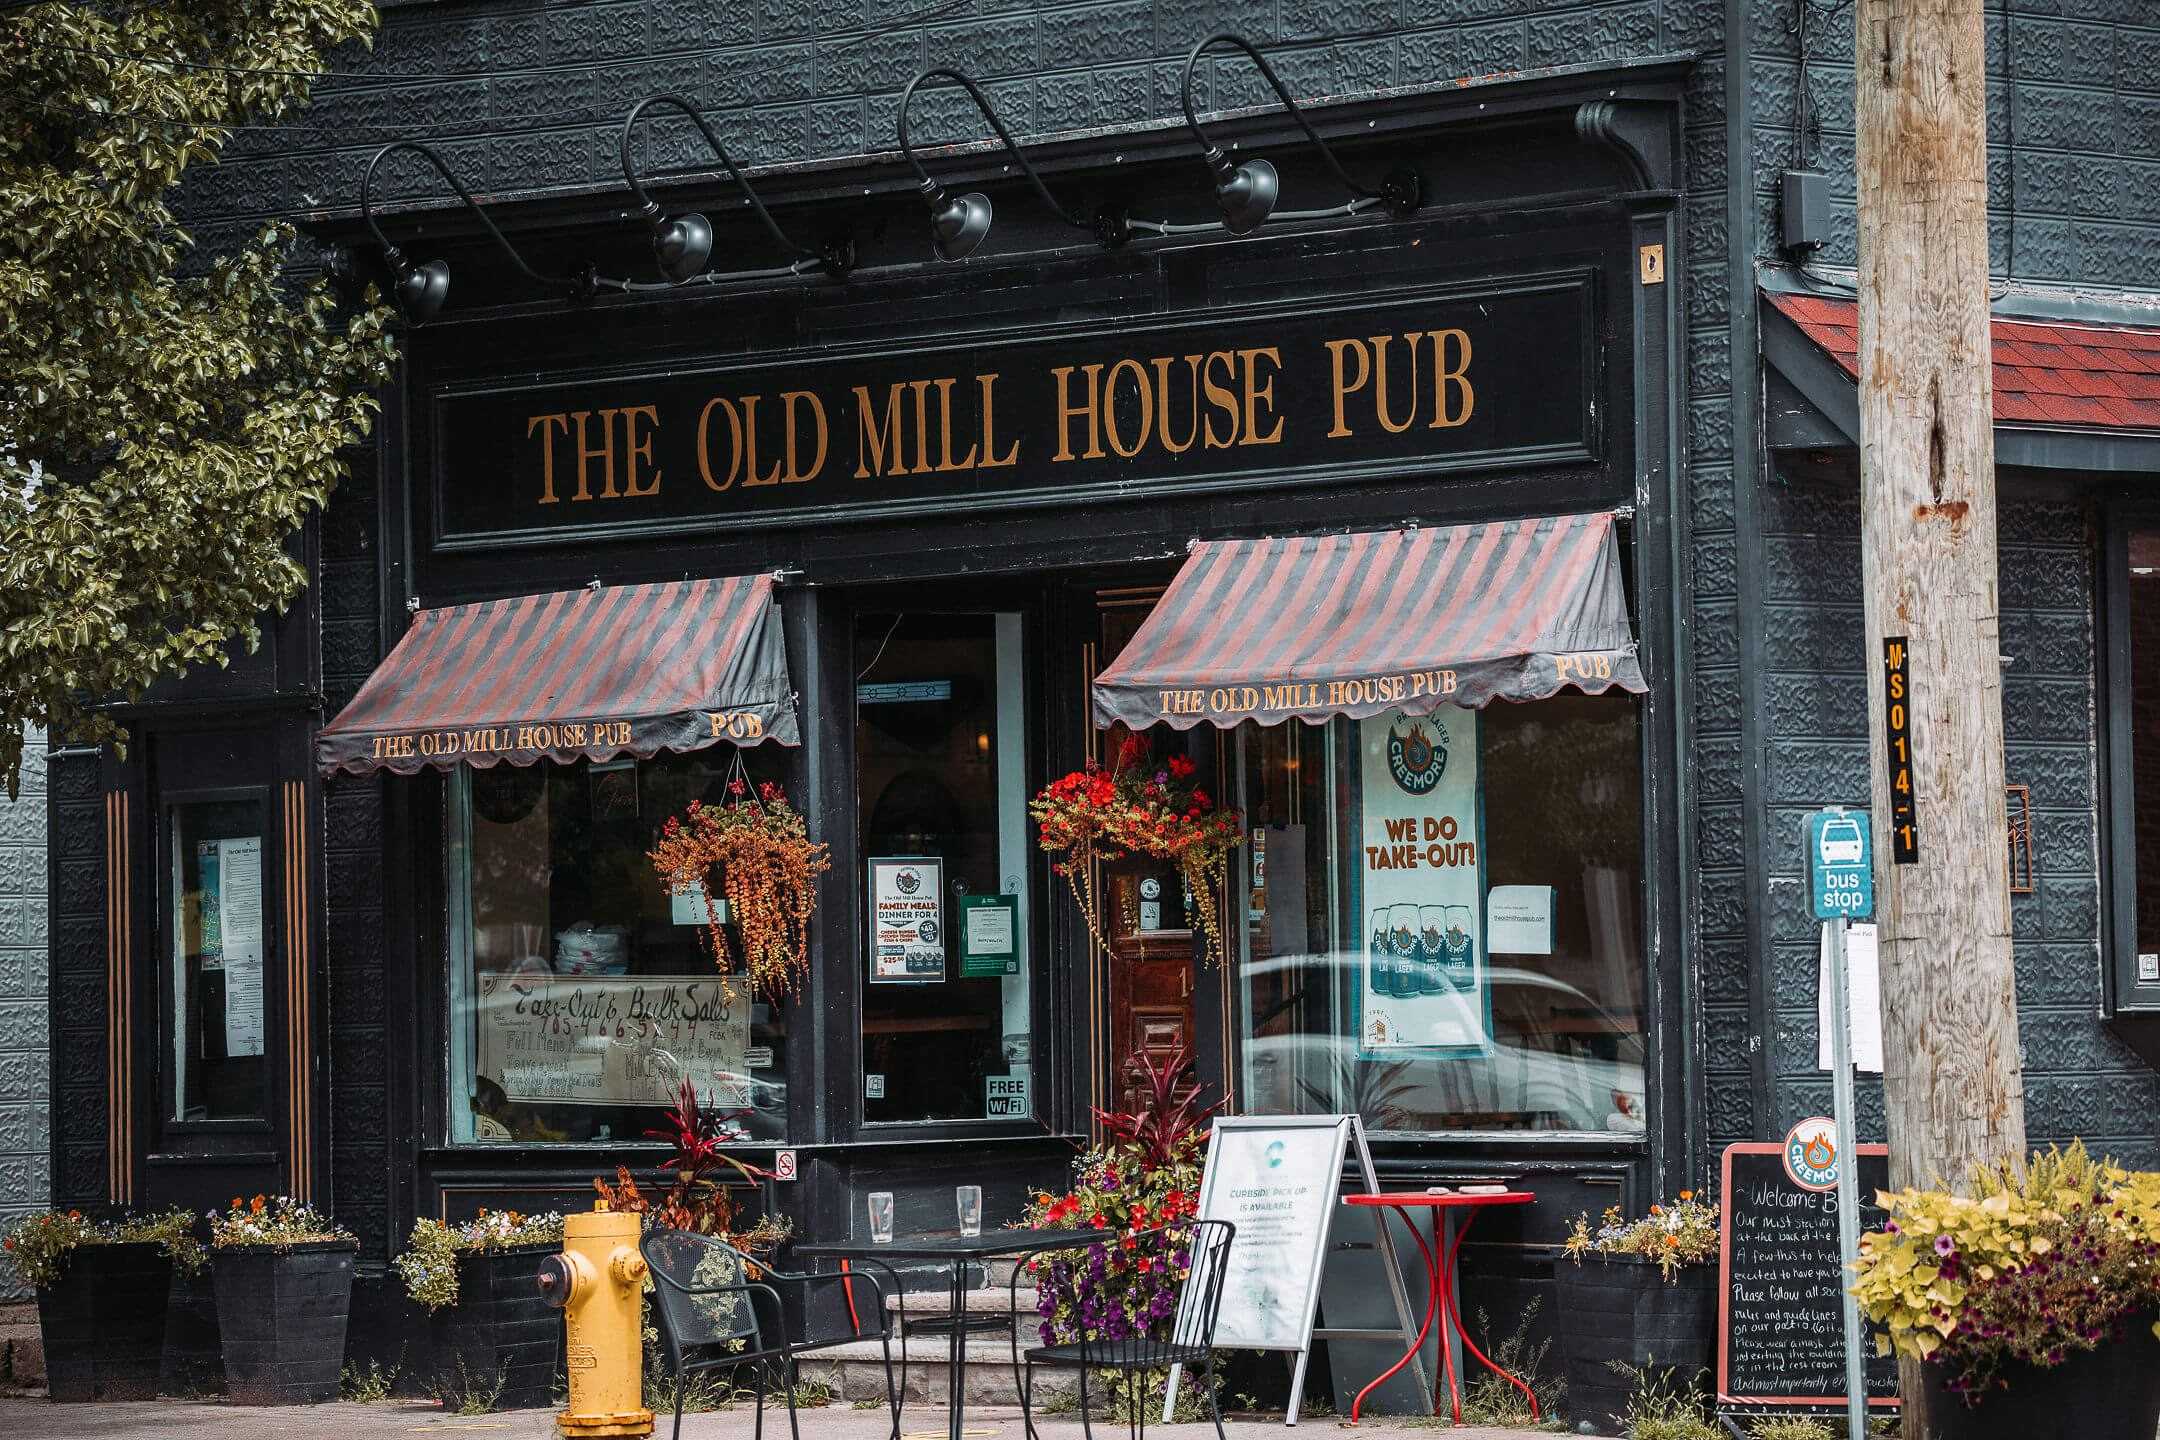 The Old Mill House Pub in Creemore, Ontario